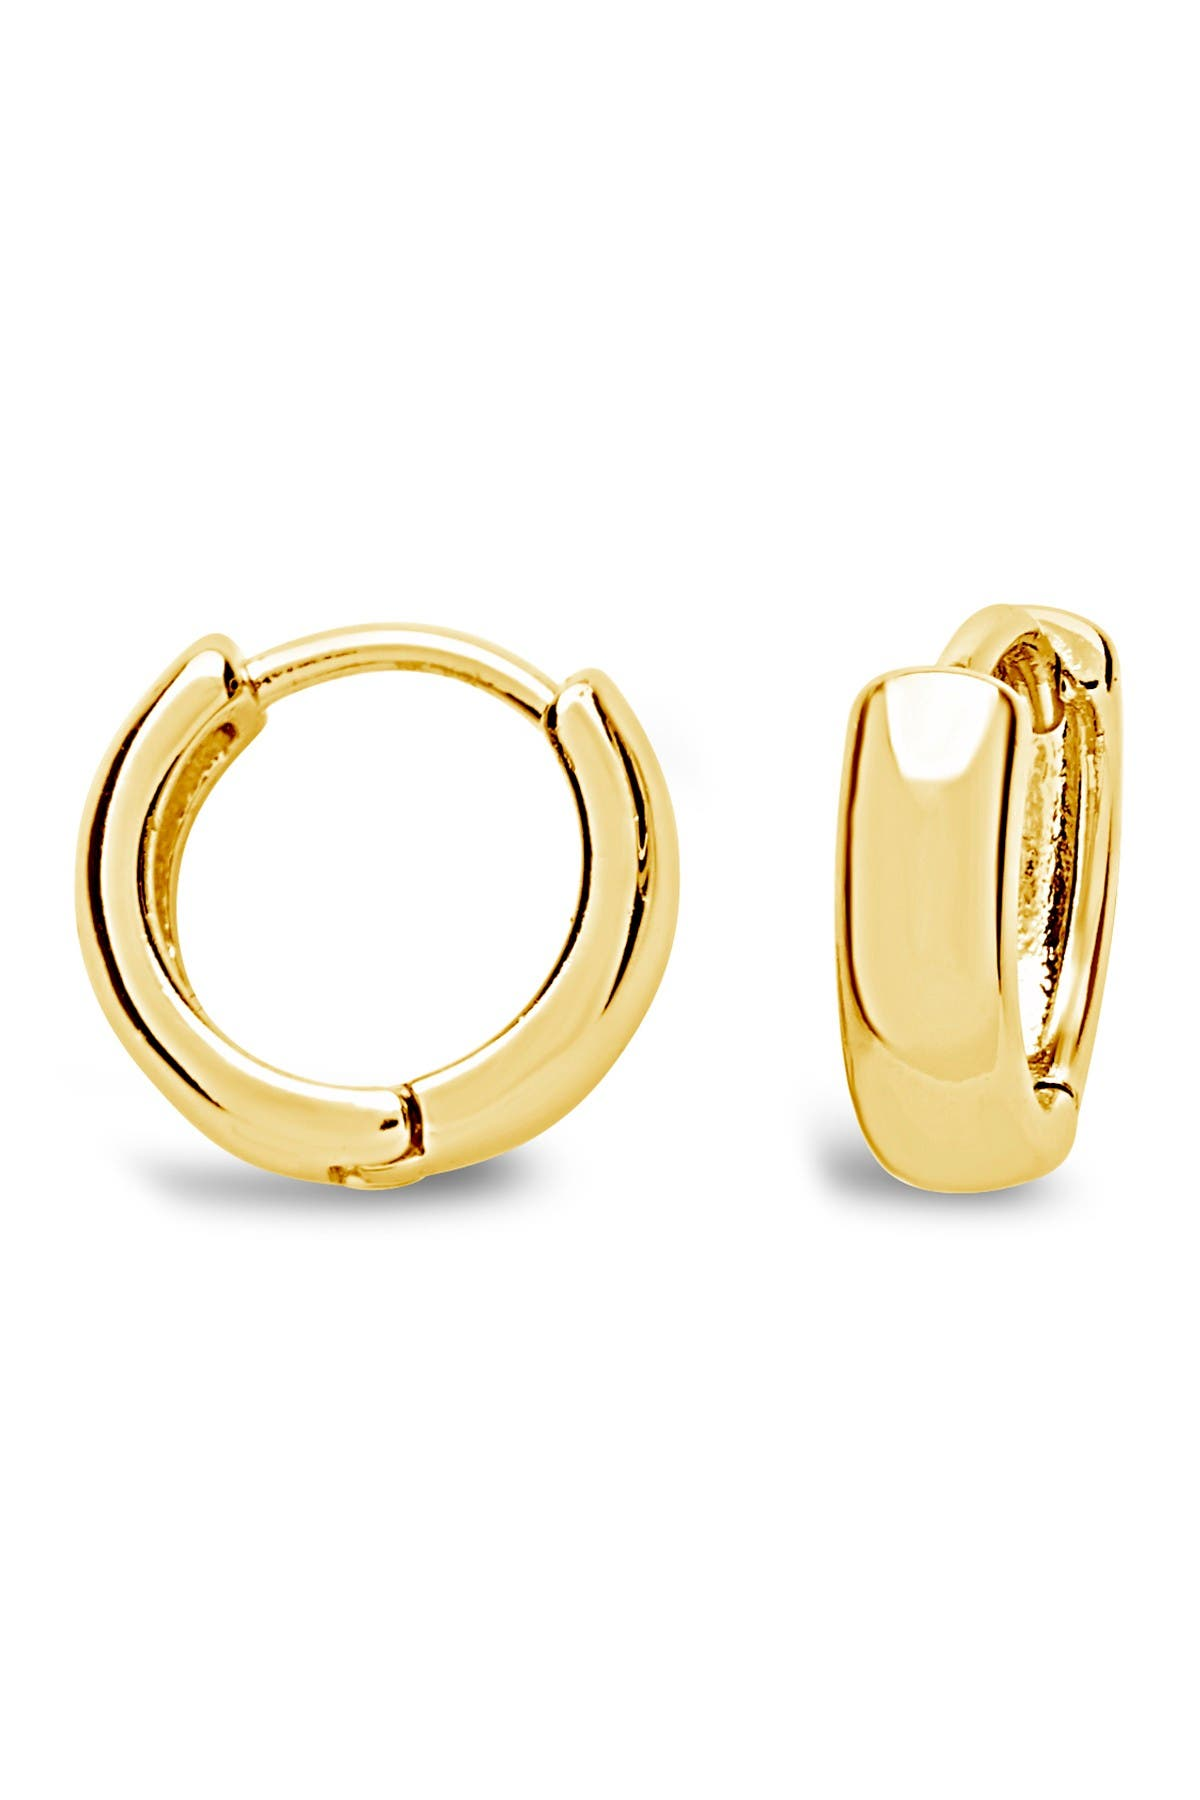 14K Yellow Gold Twisted Hoop Earrings Best Ladies Earrings Best Gift for Him and for Her